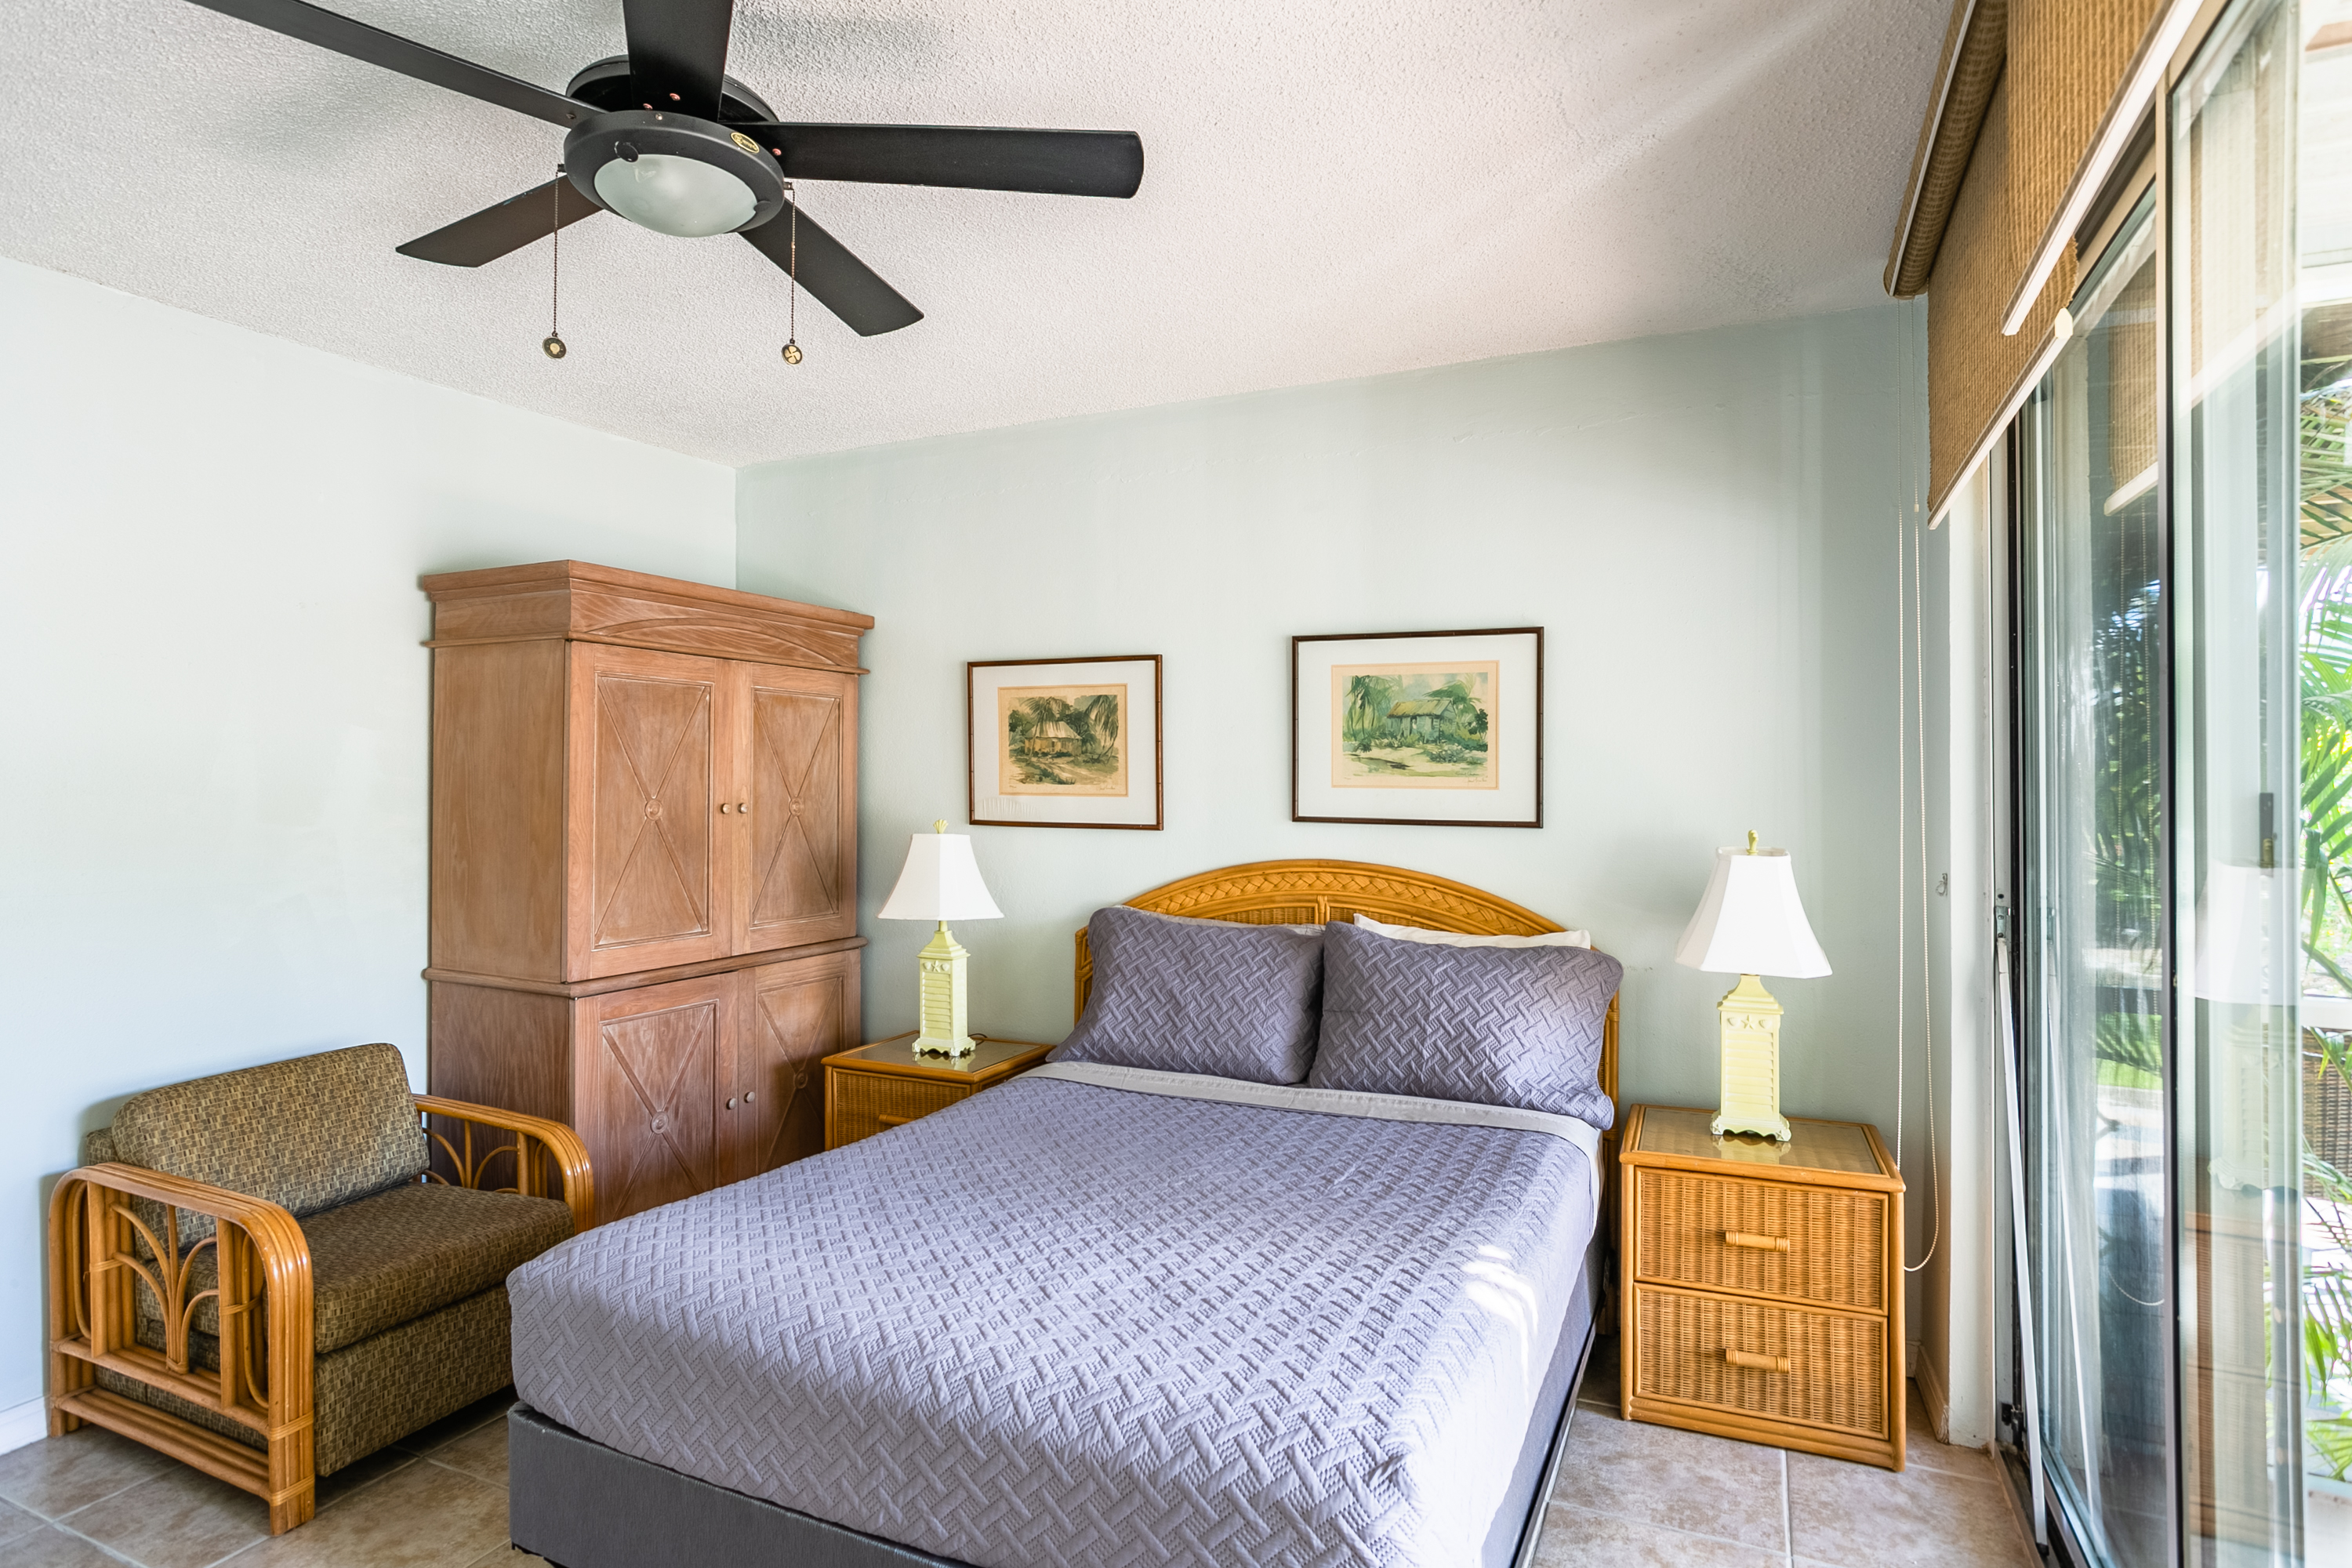 Bedroom with Ceiling fan and A/C